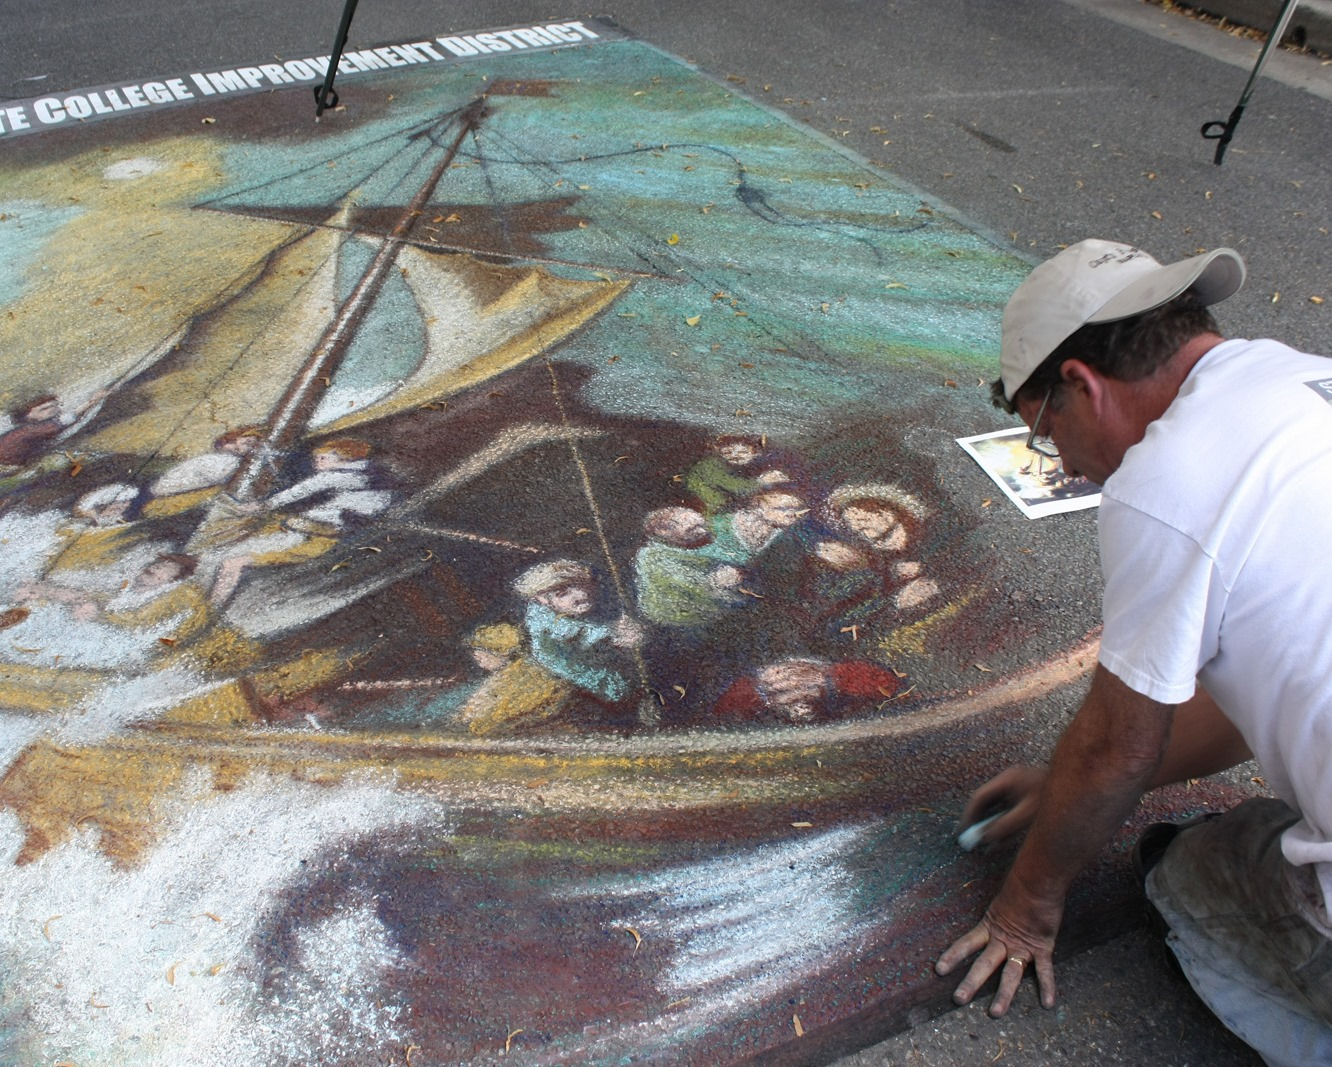 Working on a Rembrandt: Italian Street Painting Festival